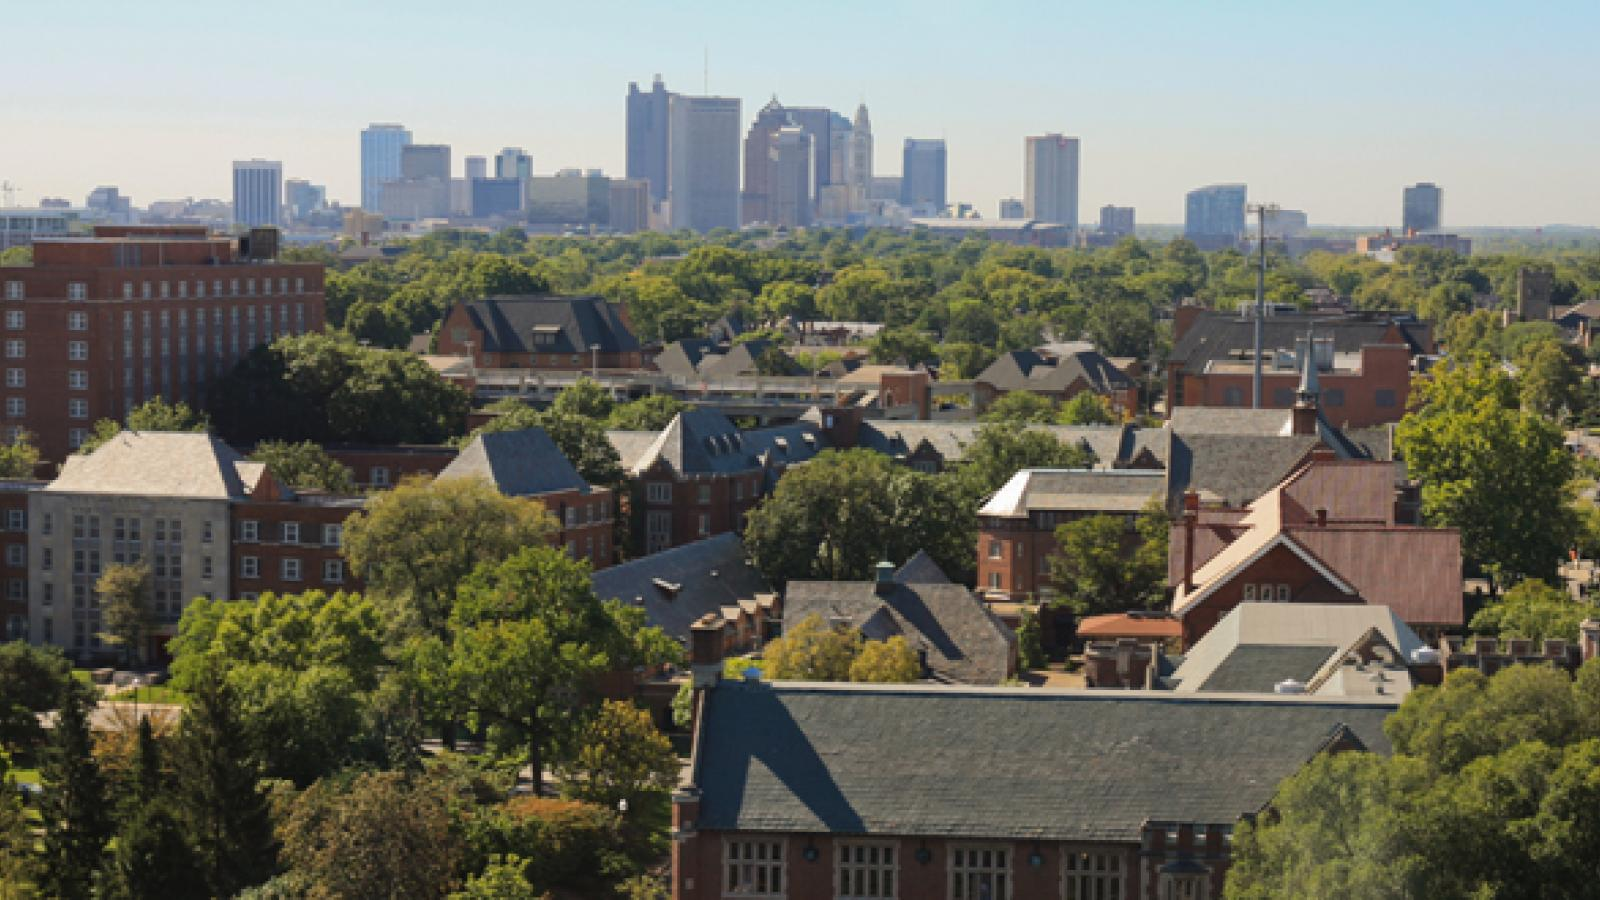 The horizon beyond Ohio State University